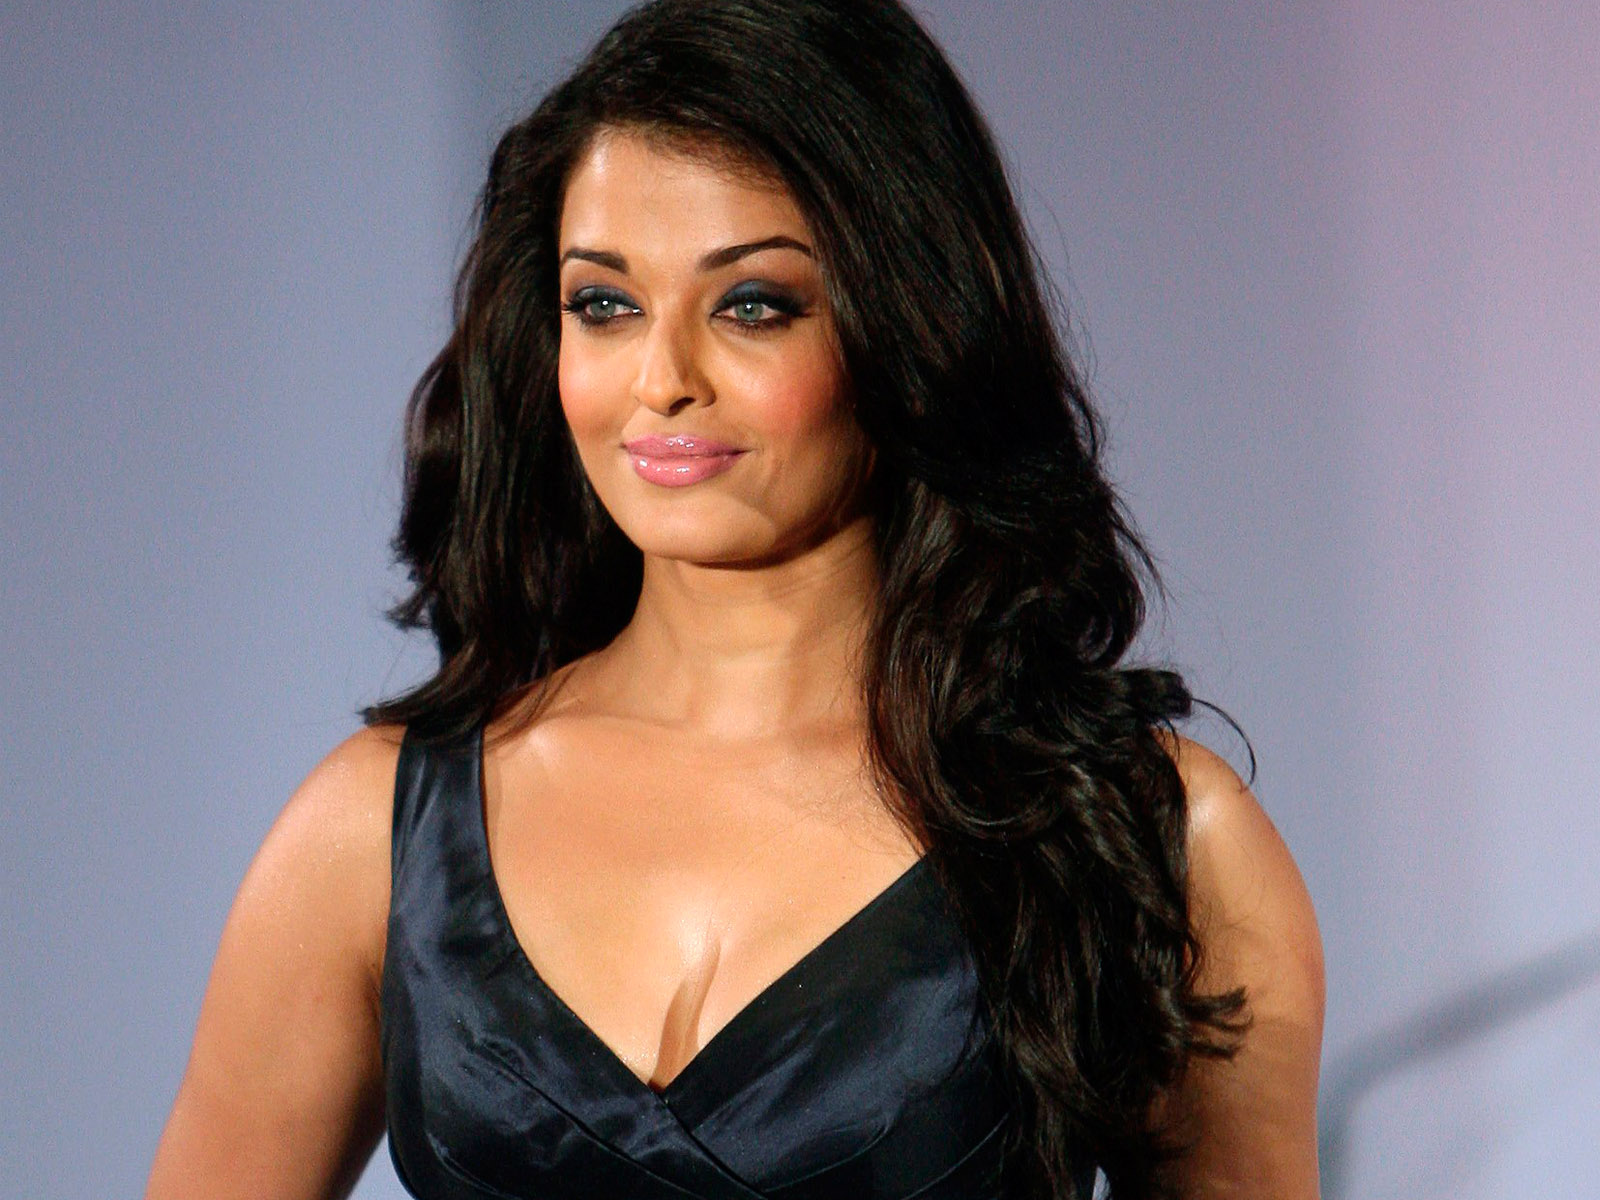 Gambler Indian Beauty Aishwarya Rai Hot Low V Cut Dresses